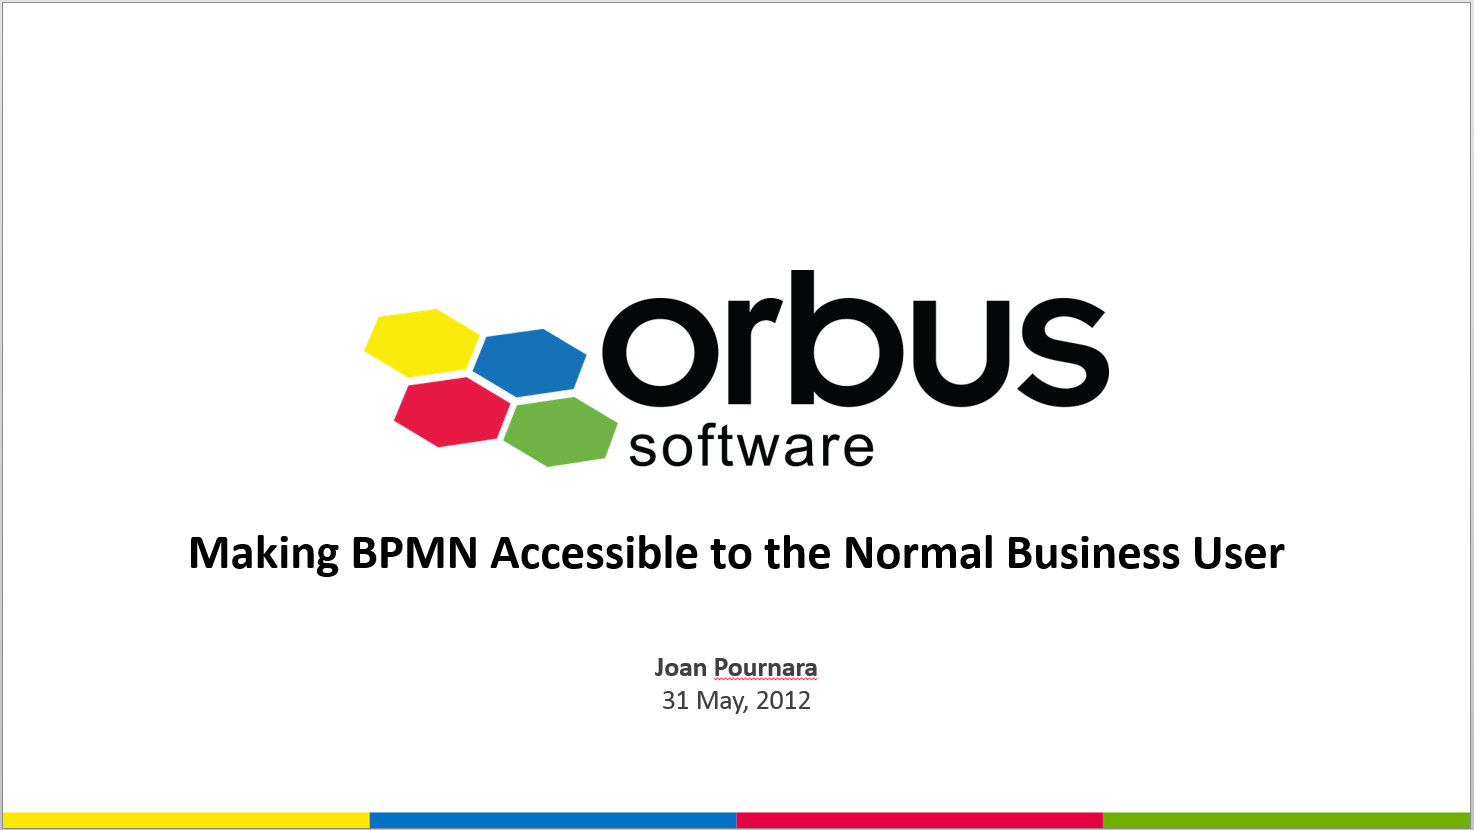 Making BPMN Accessible to the Normal Business User